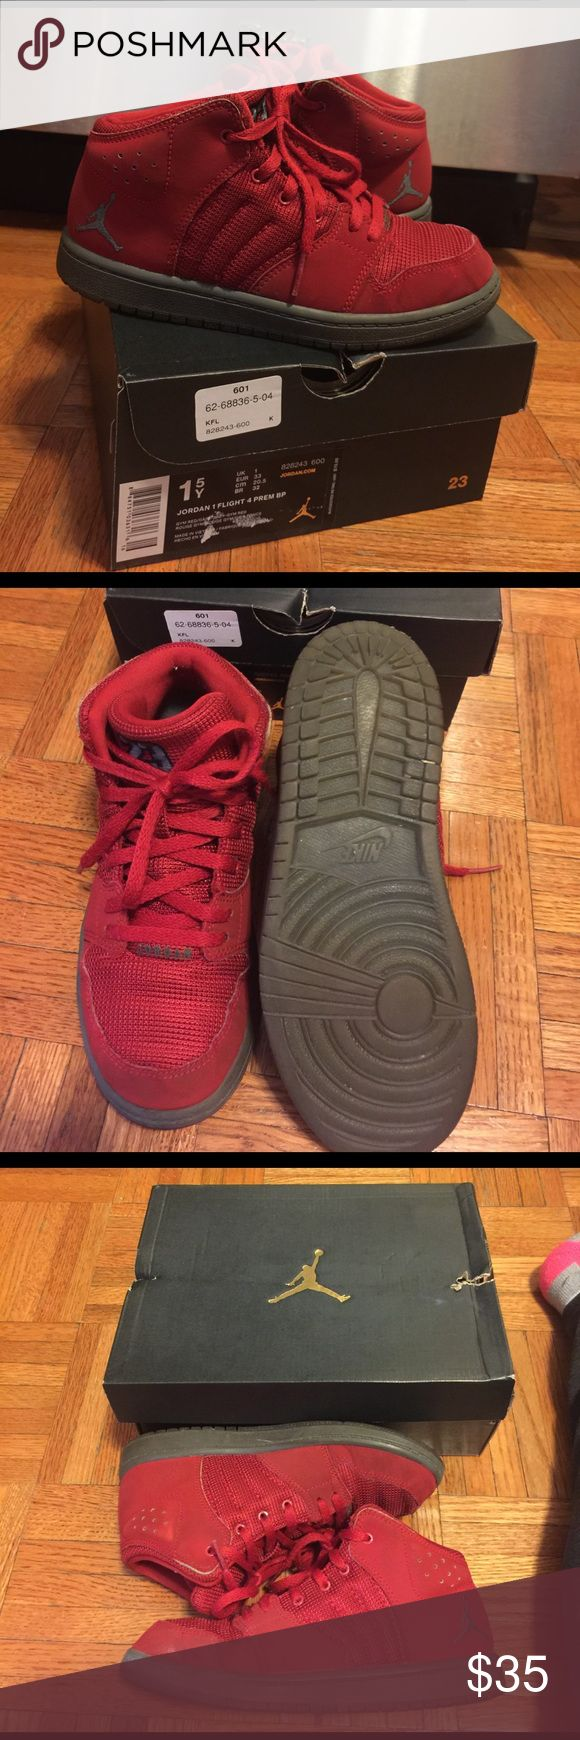 Kids Michael Jordan In good condition Michael Jordan shoes for kids from footlocker with box. Nike Shoes Sneakers